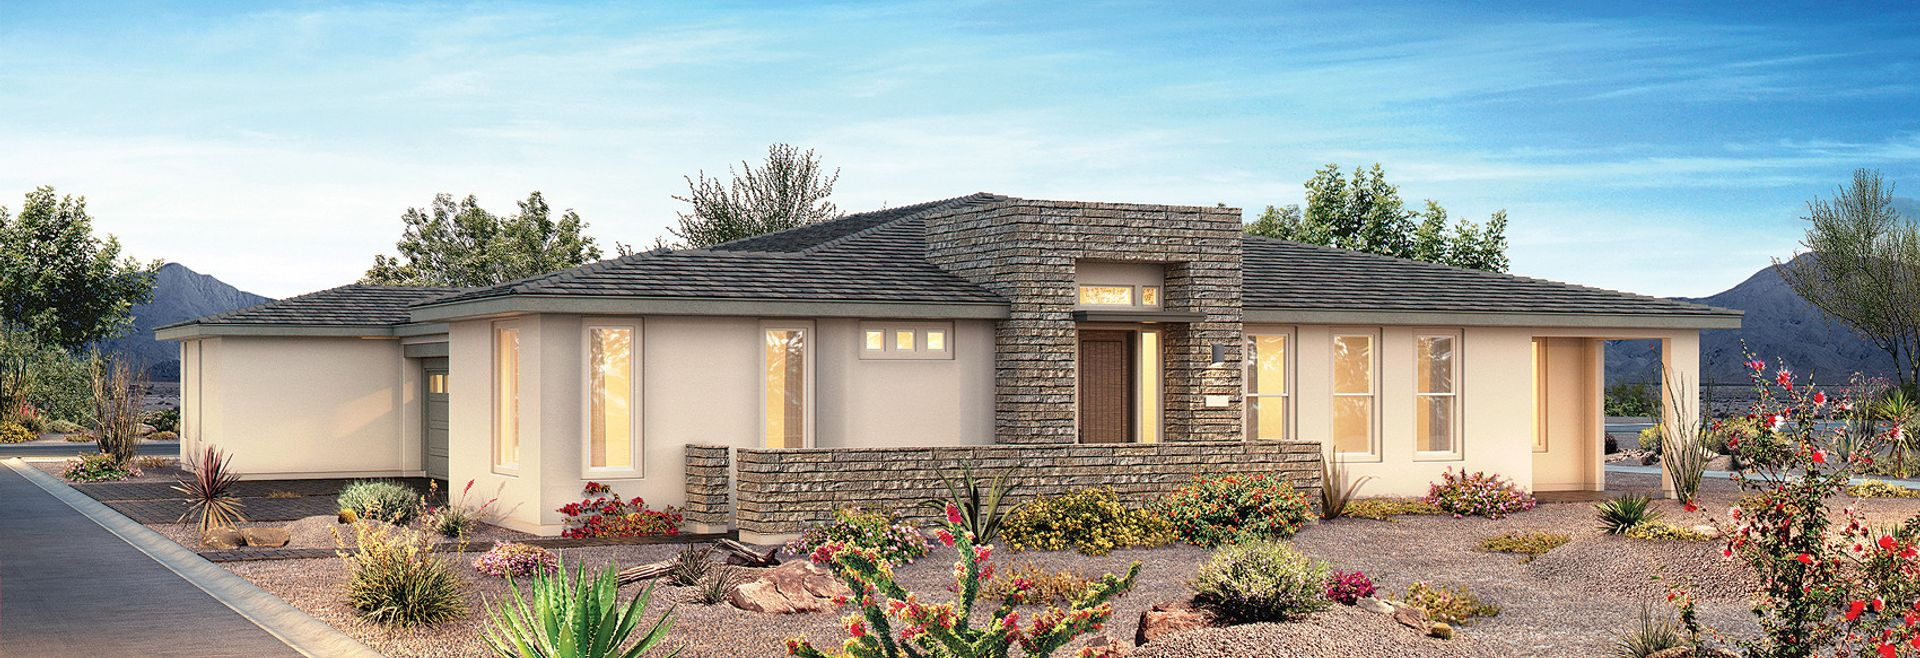 Trilogy in Summerlin Plan Haven Exterior